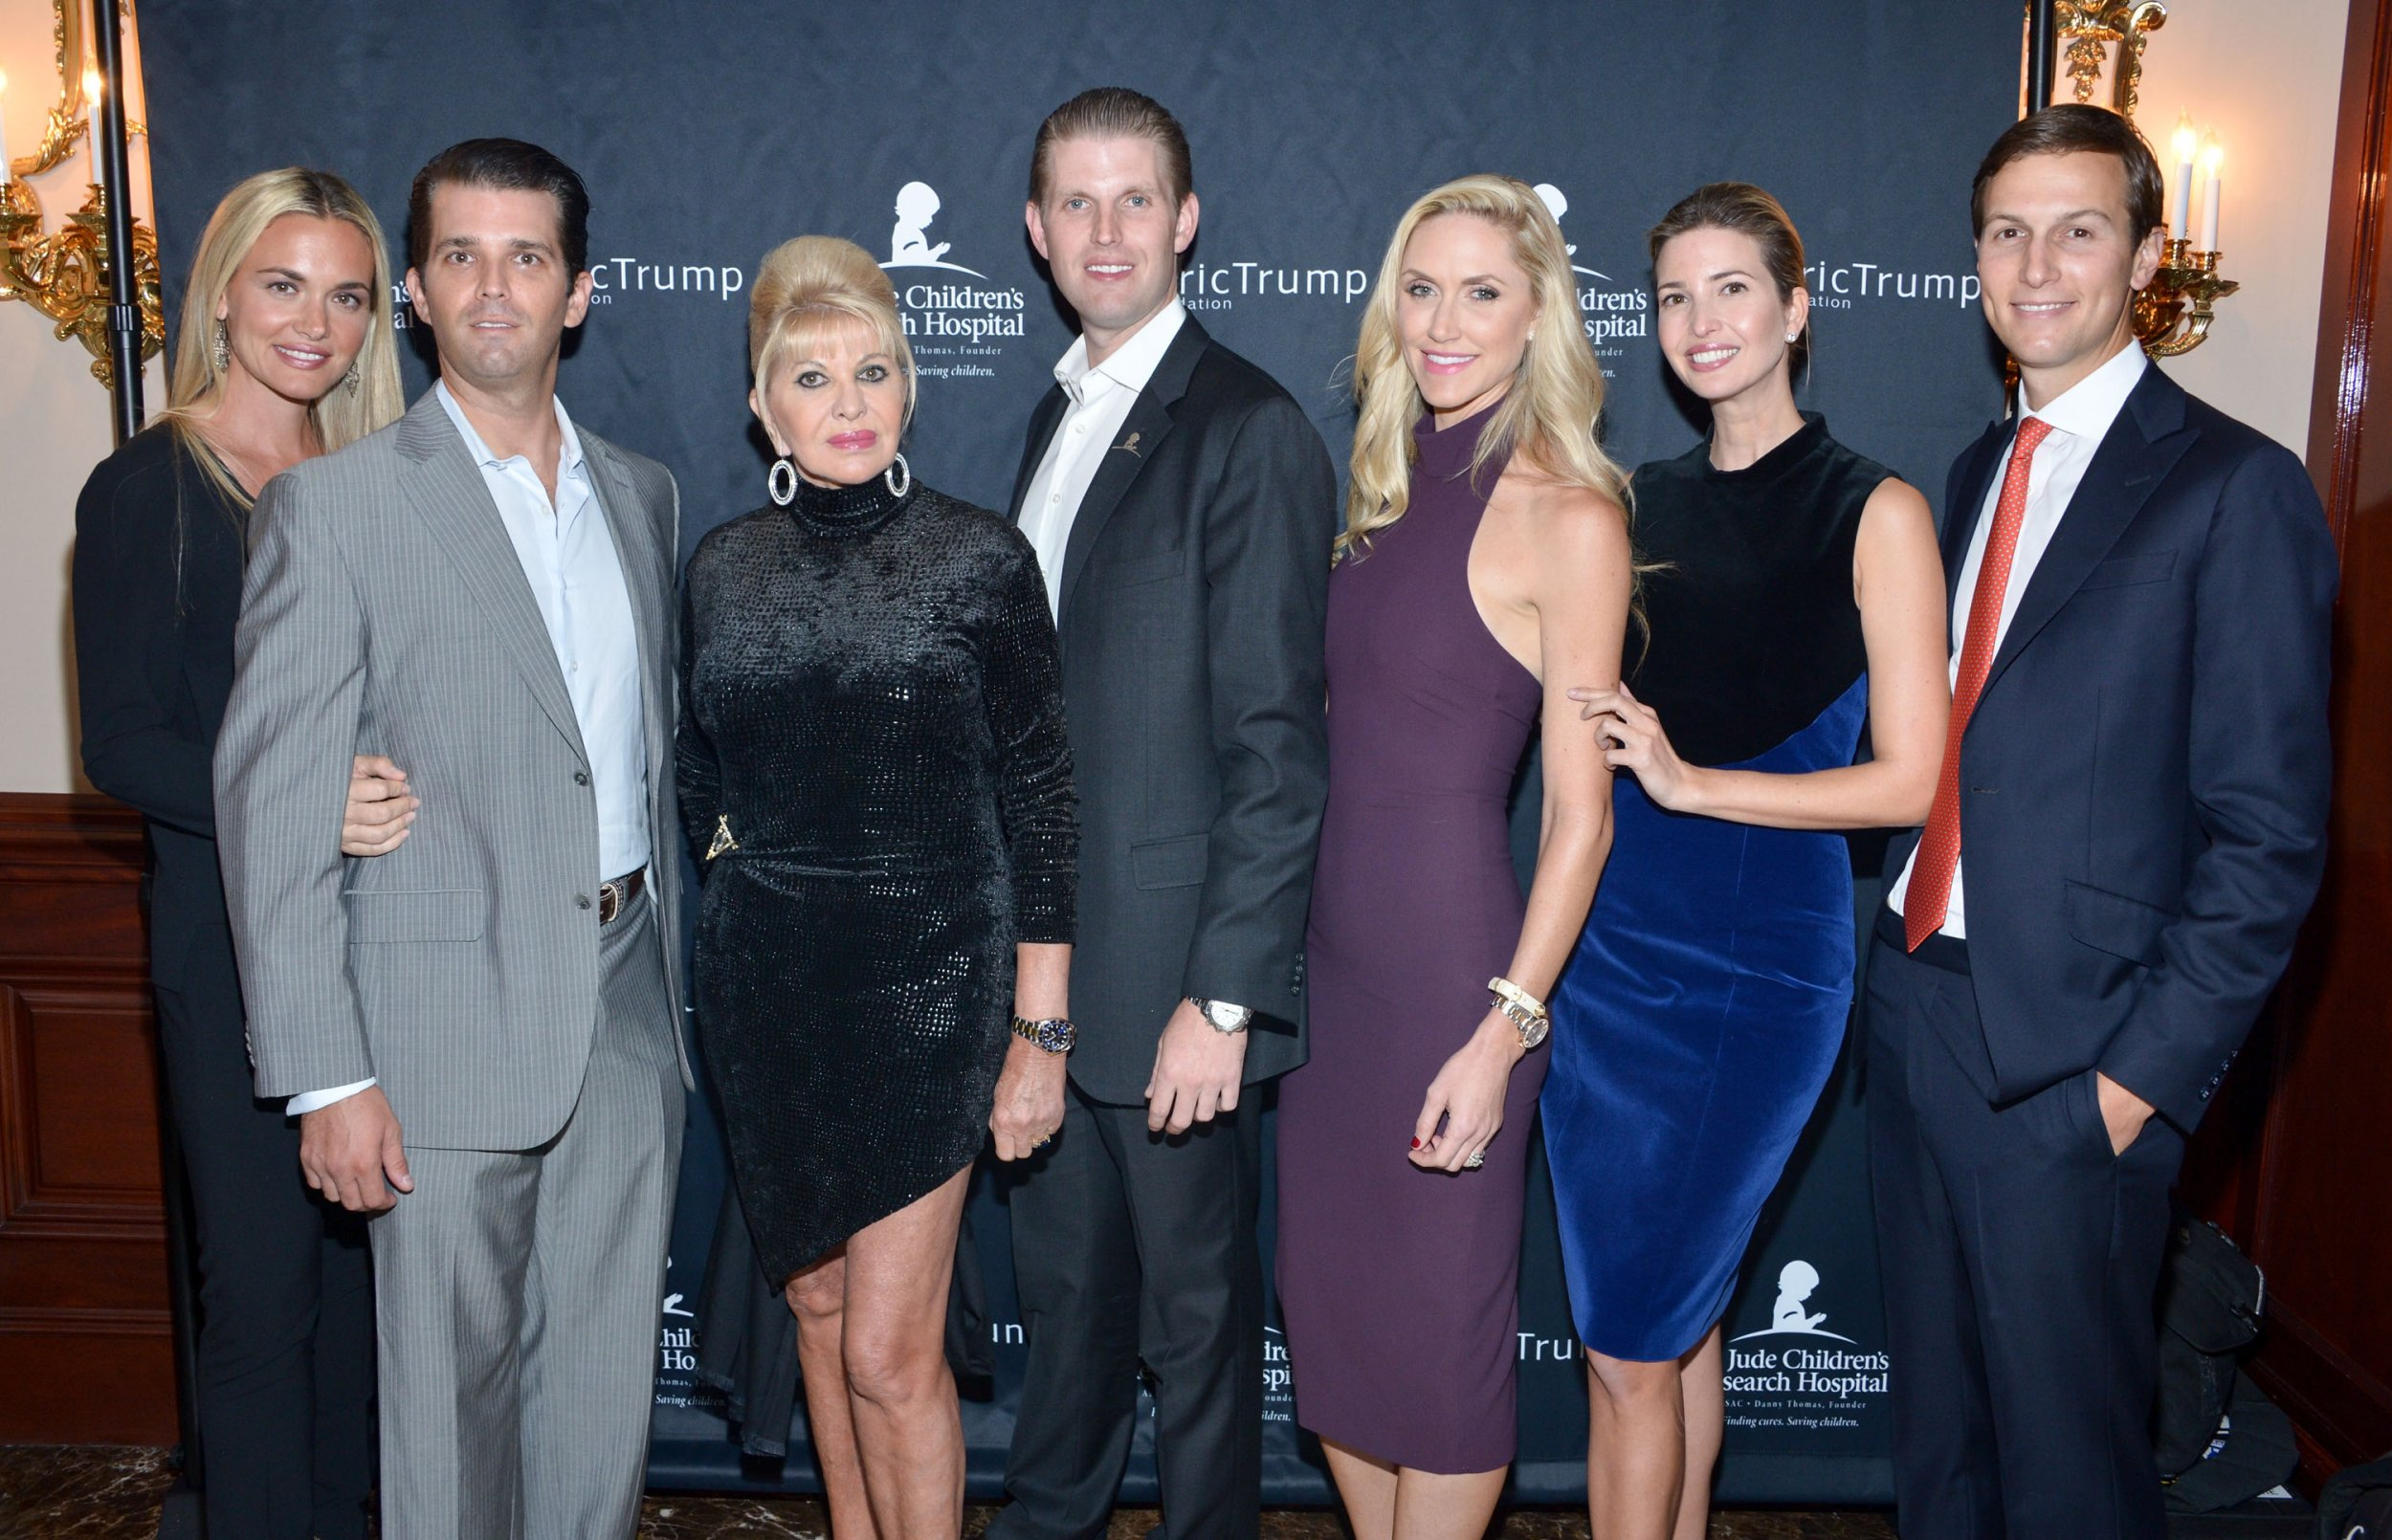 Eric Trump, disloyal, dad cheated mom